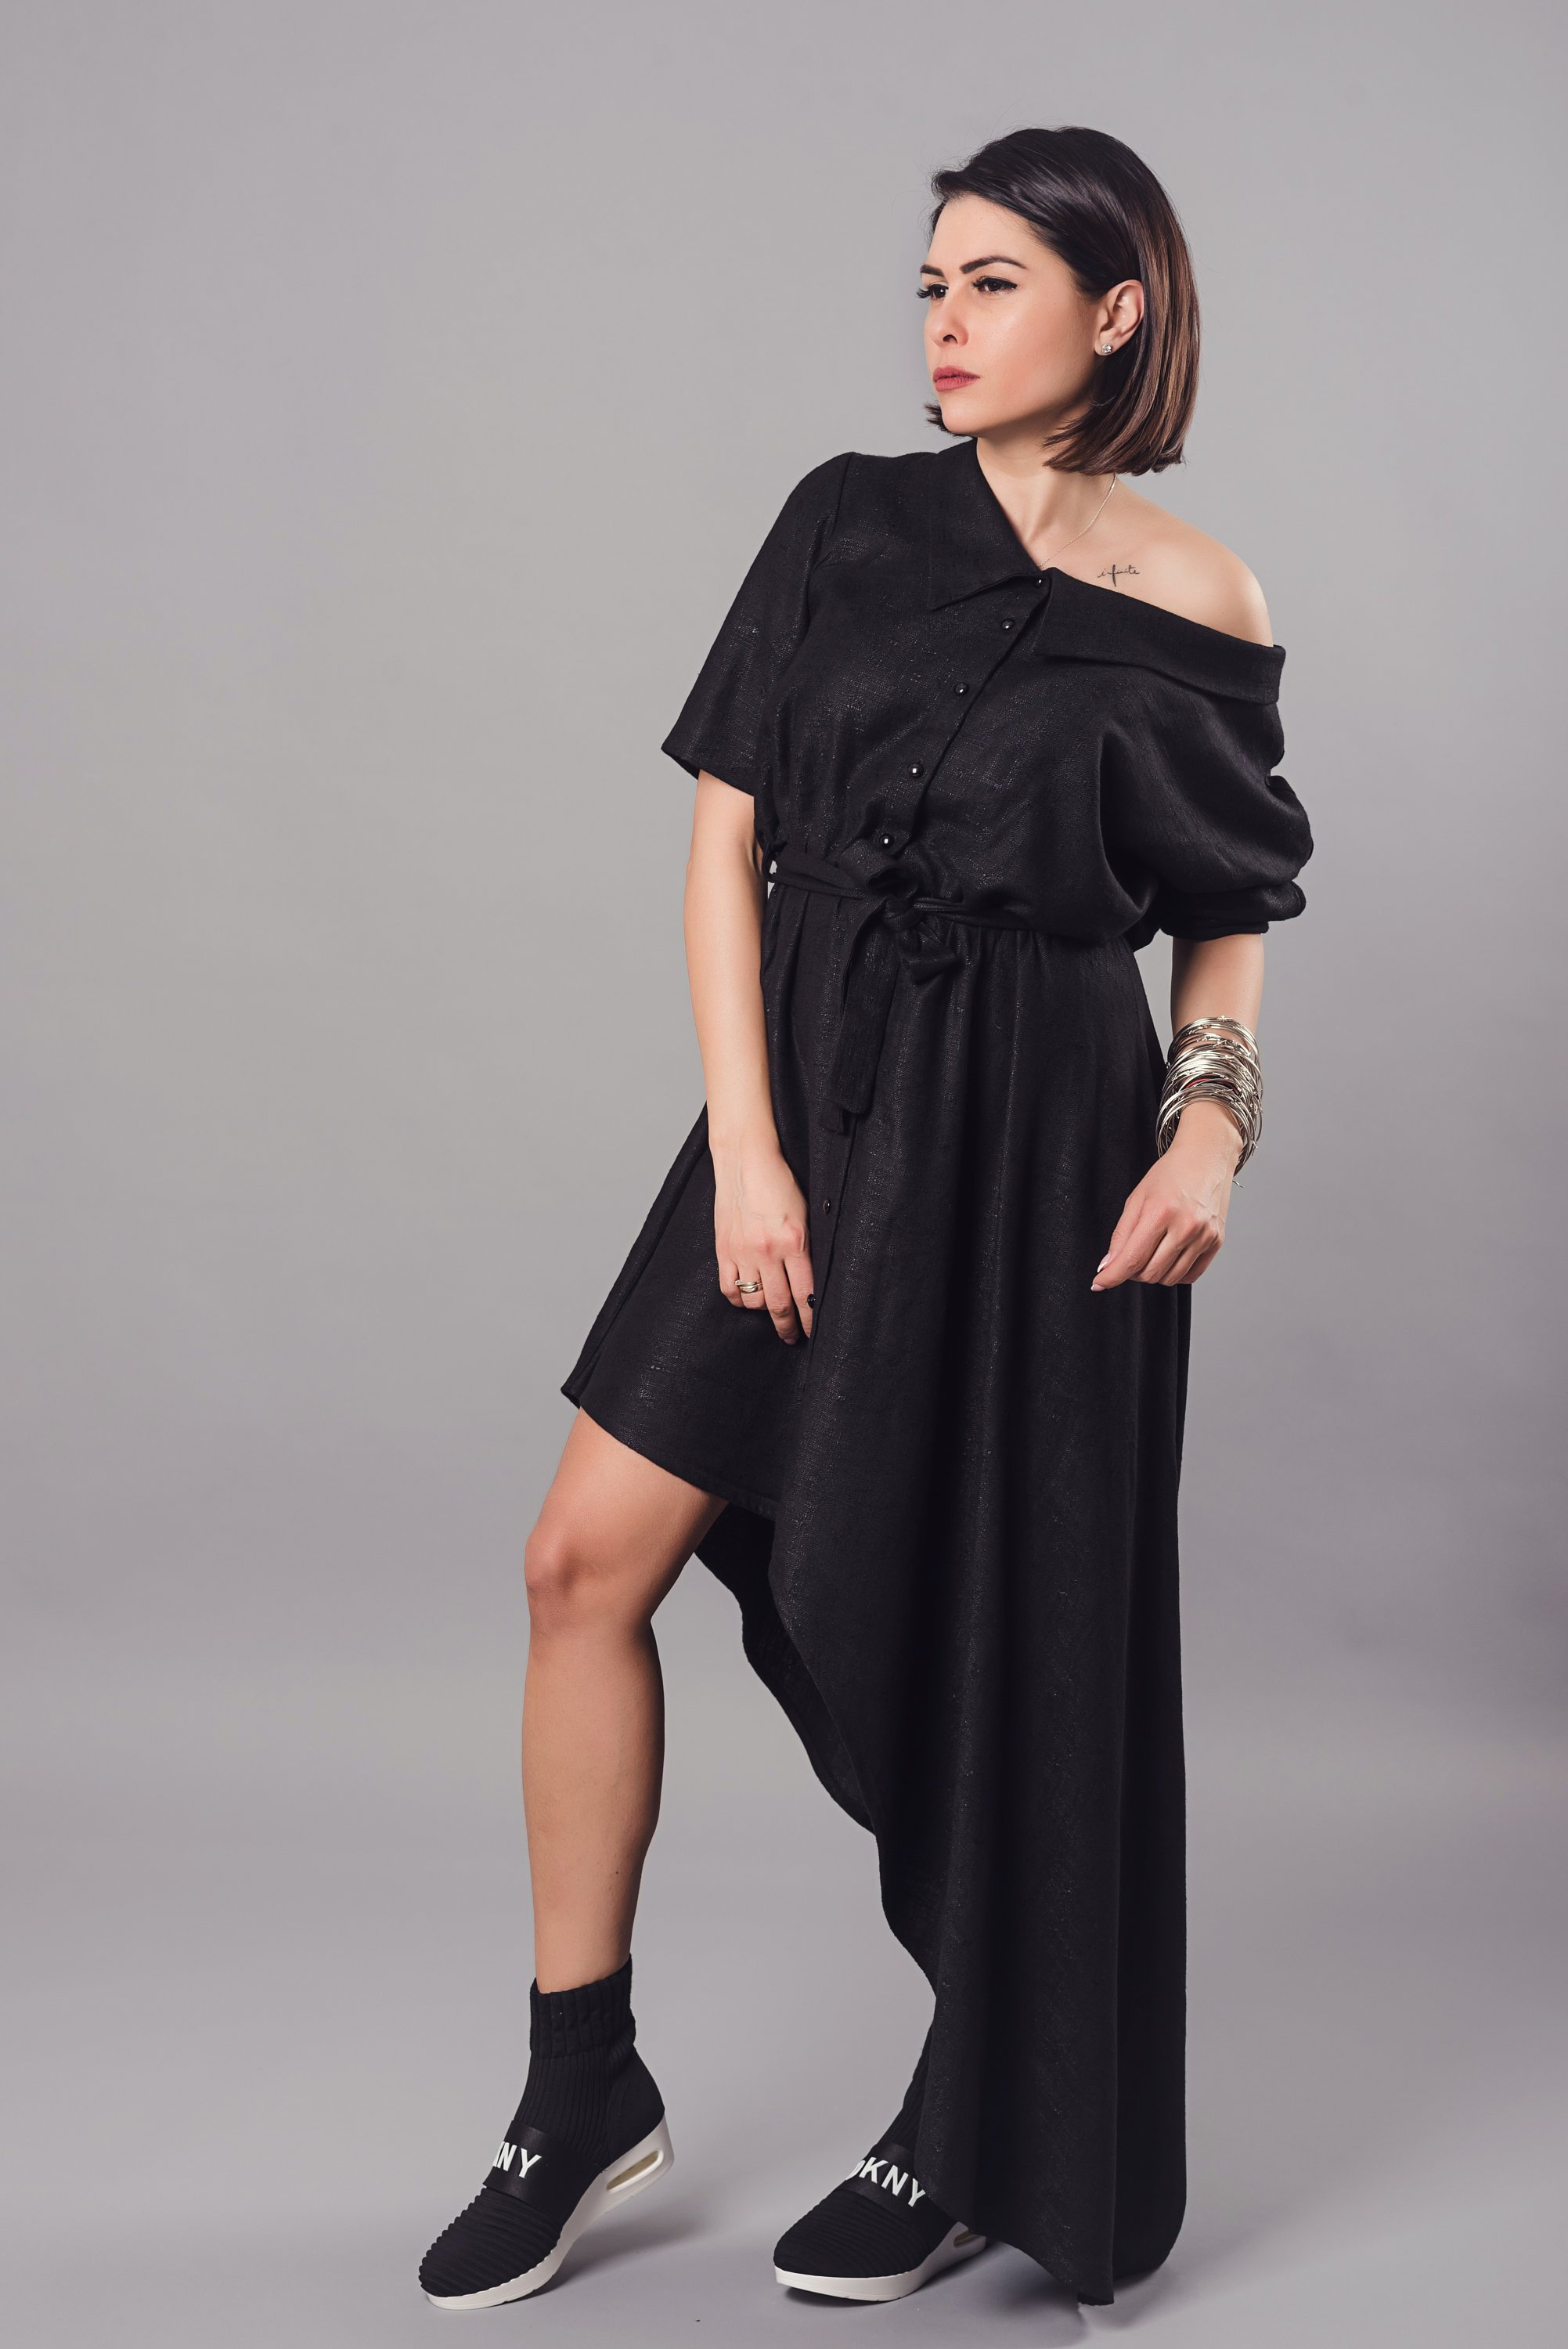 Women Dress, Linen Dress, Black Dress, Shirt Dress, Asymmetric Dress, Loose Dress, Party Dress, Gothic Dress, Belt Dress, Plus Size Clothing